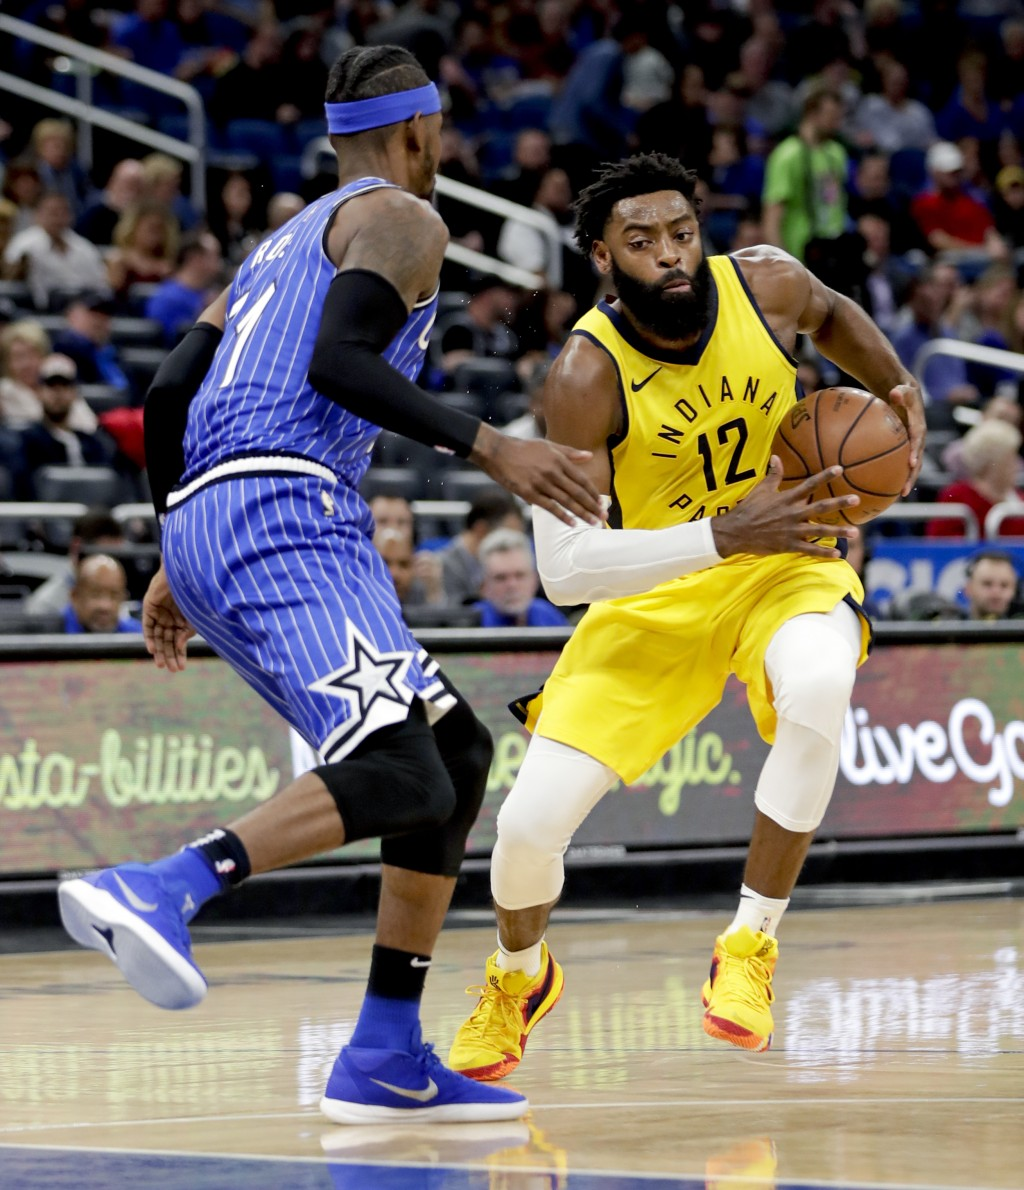 Indiana Pacers' Tyreke Evans (12) makes a move to get around Orlando Magic's Terrence Ross, left, during the first half of an NBA basketball game Frid...